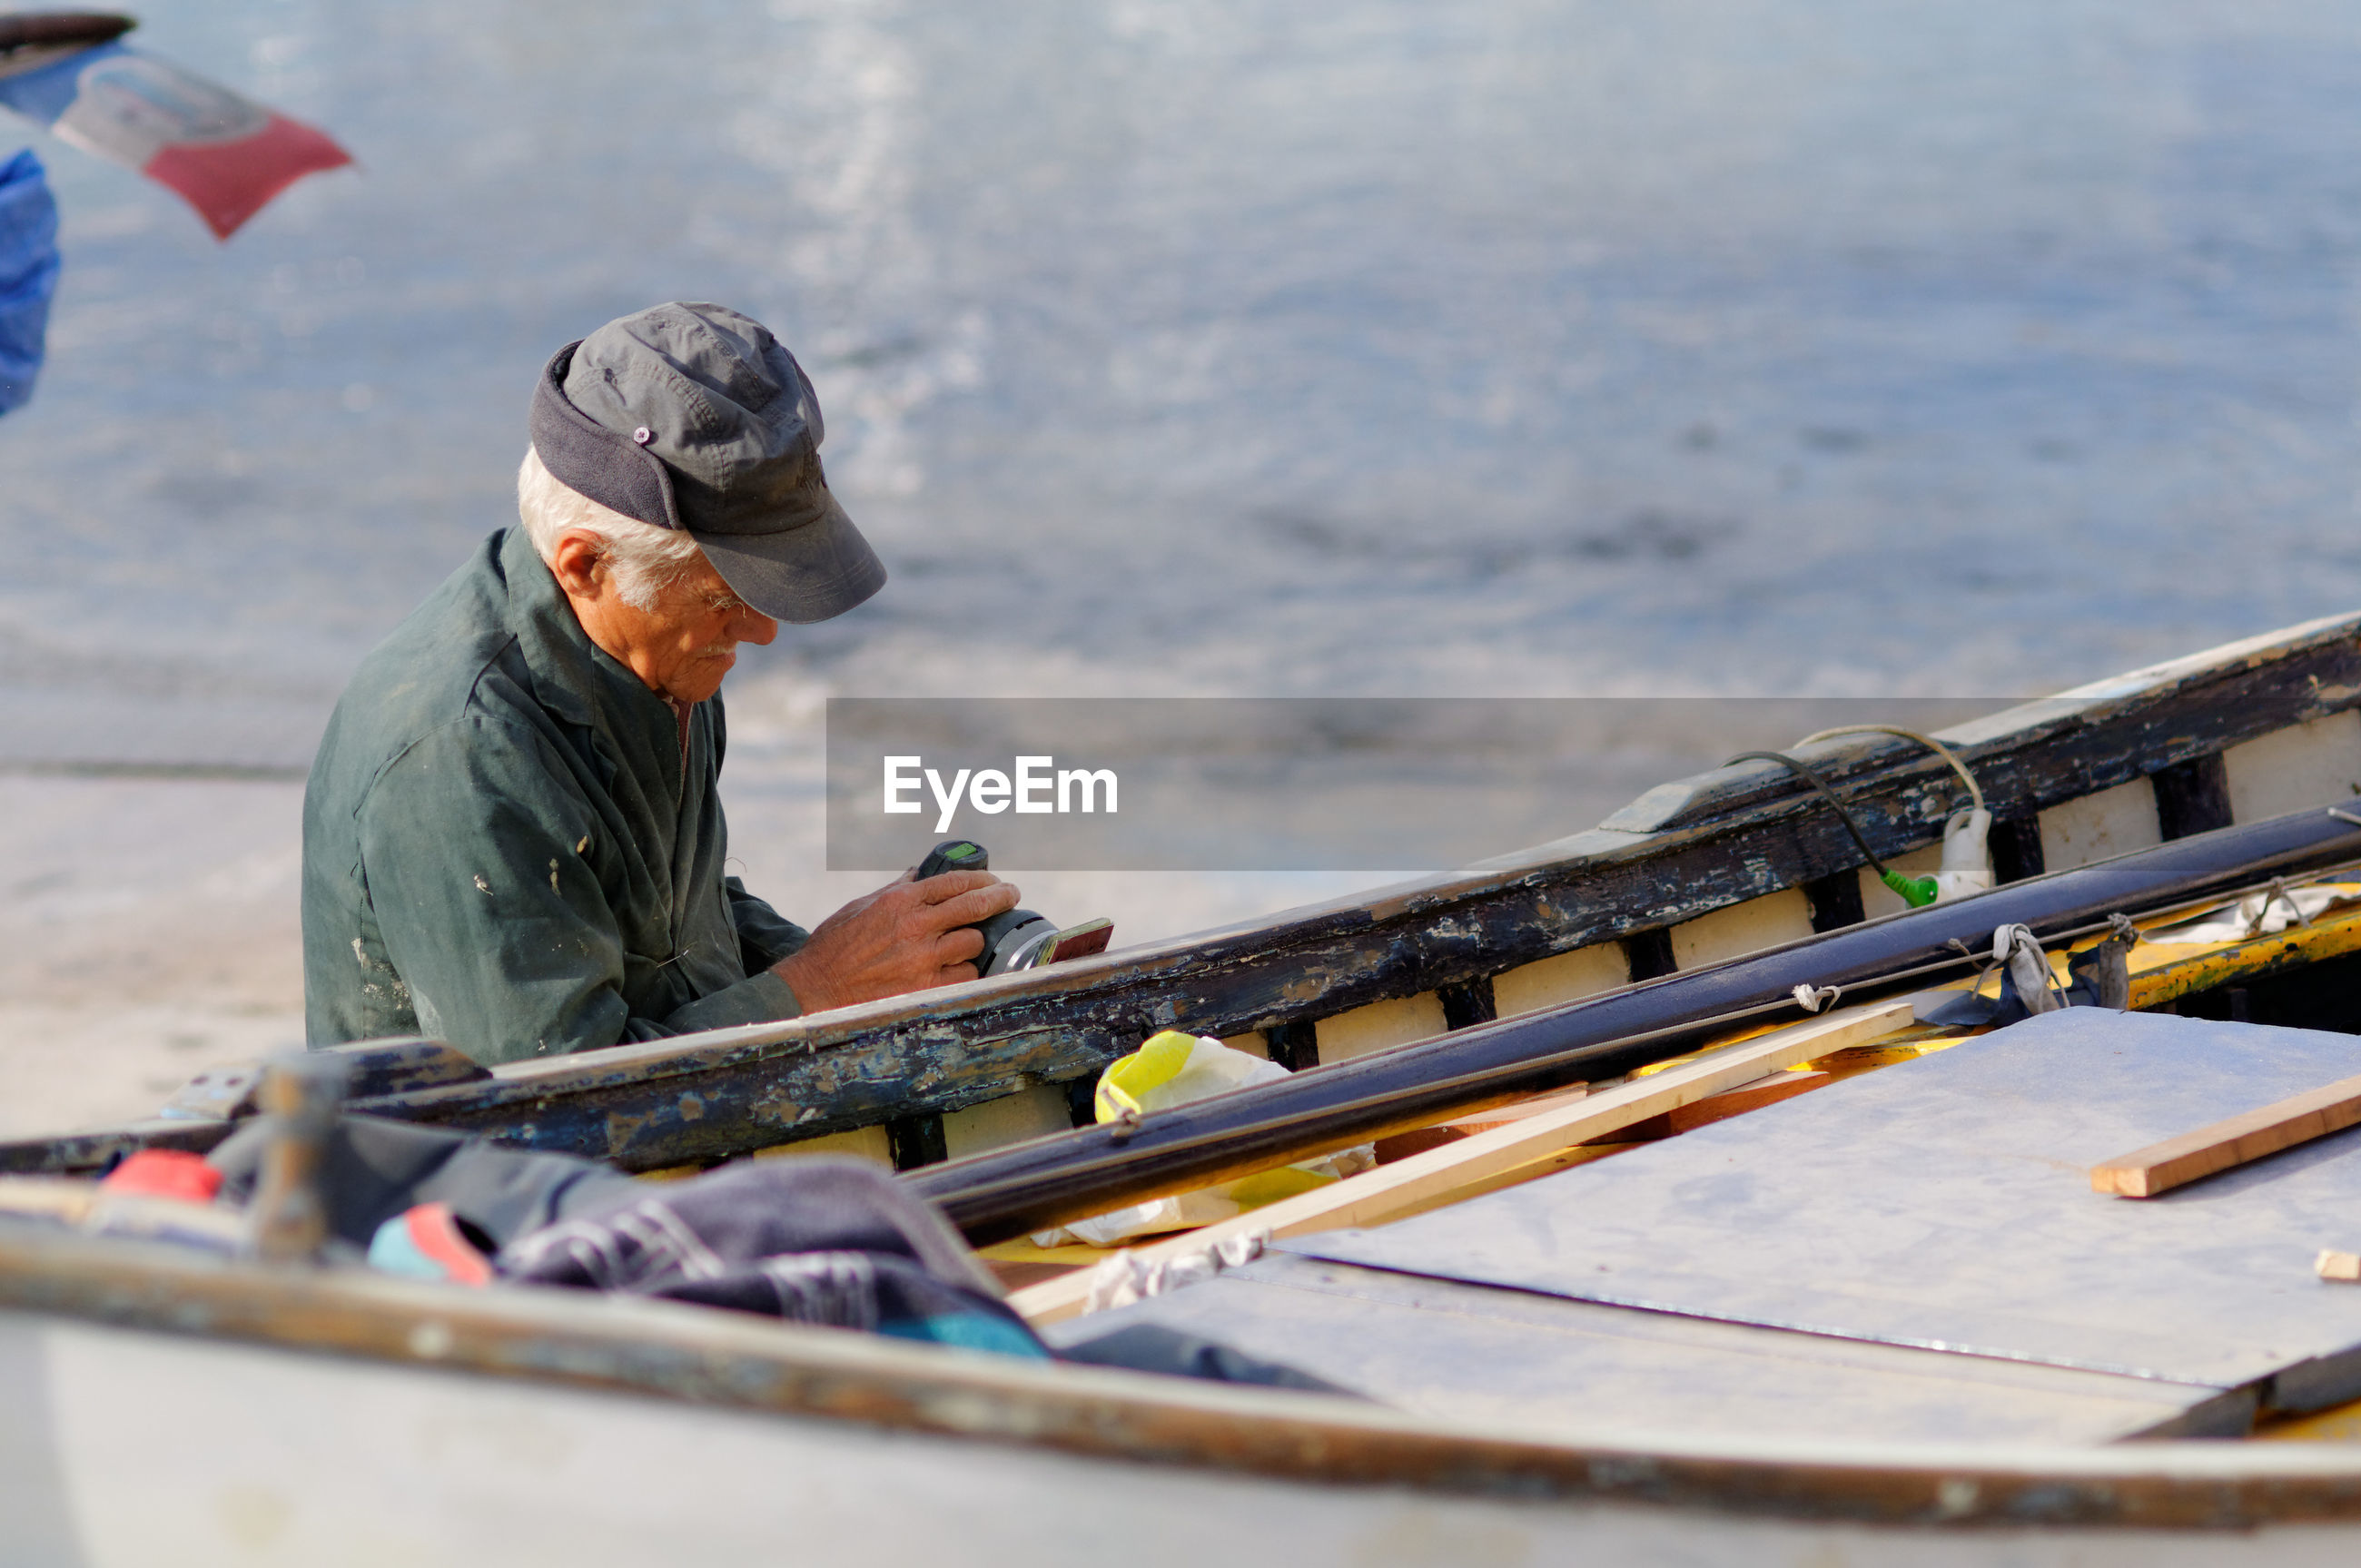 MAN WORKING ON BOAT